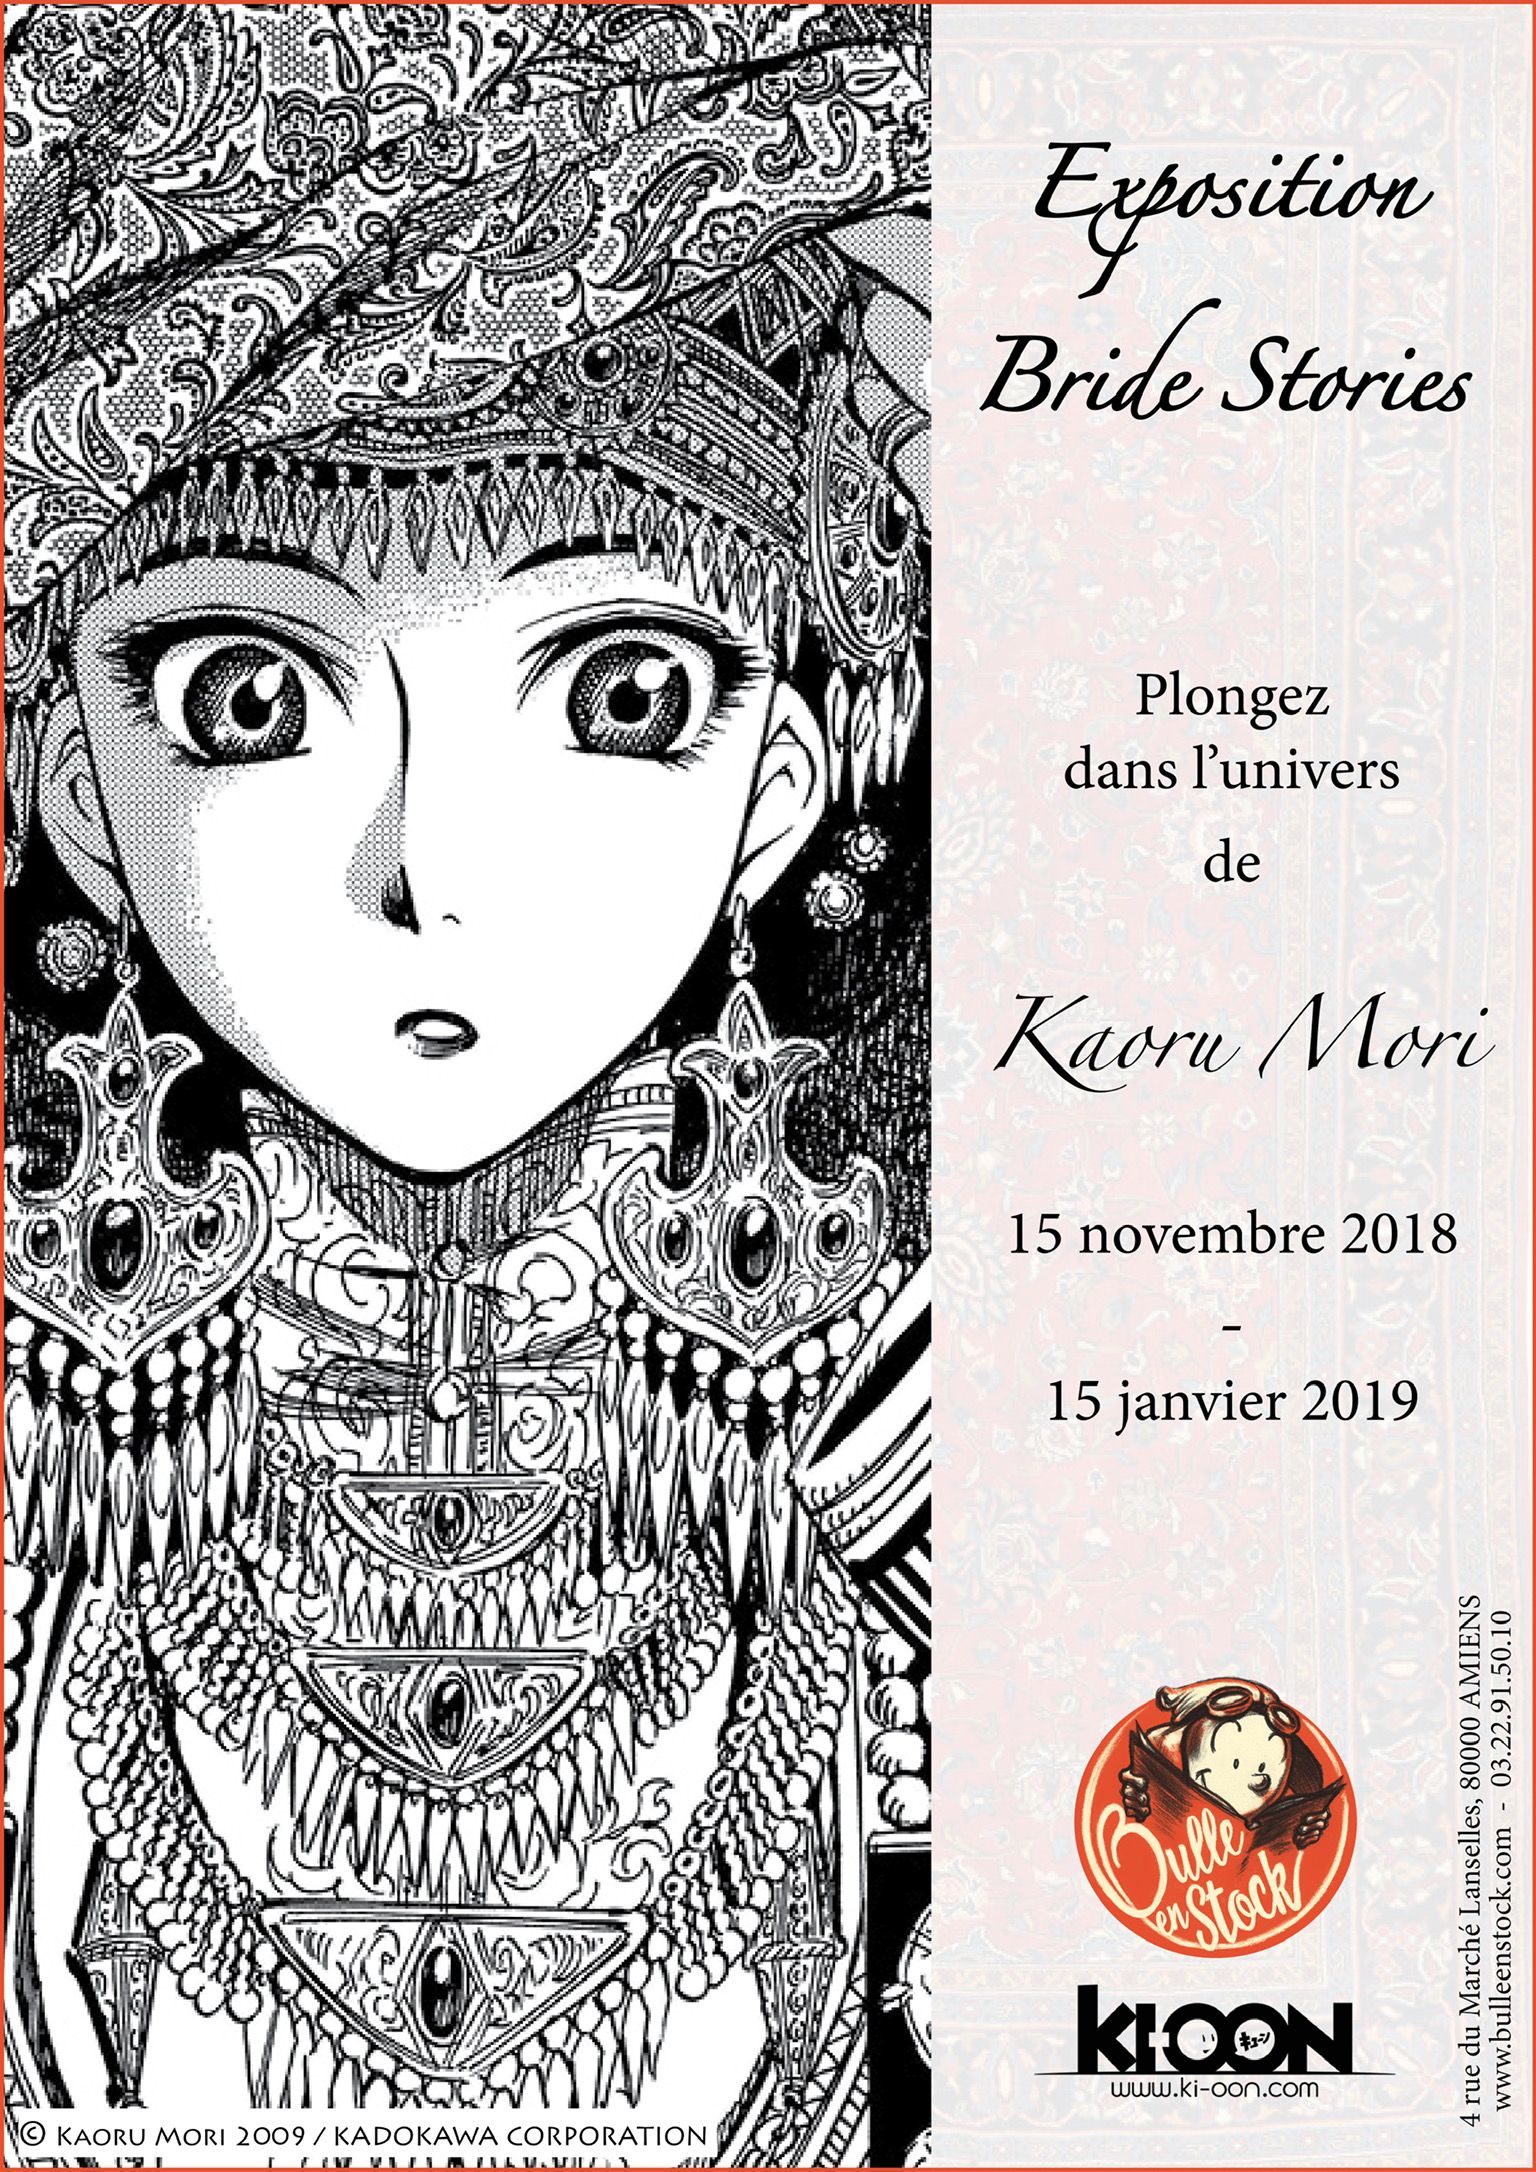 expo-bride-stories-amiens.jpeg